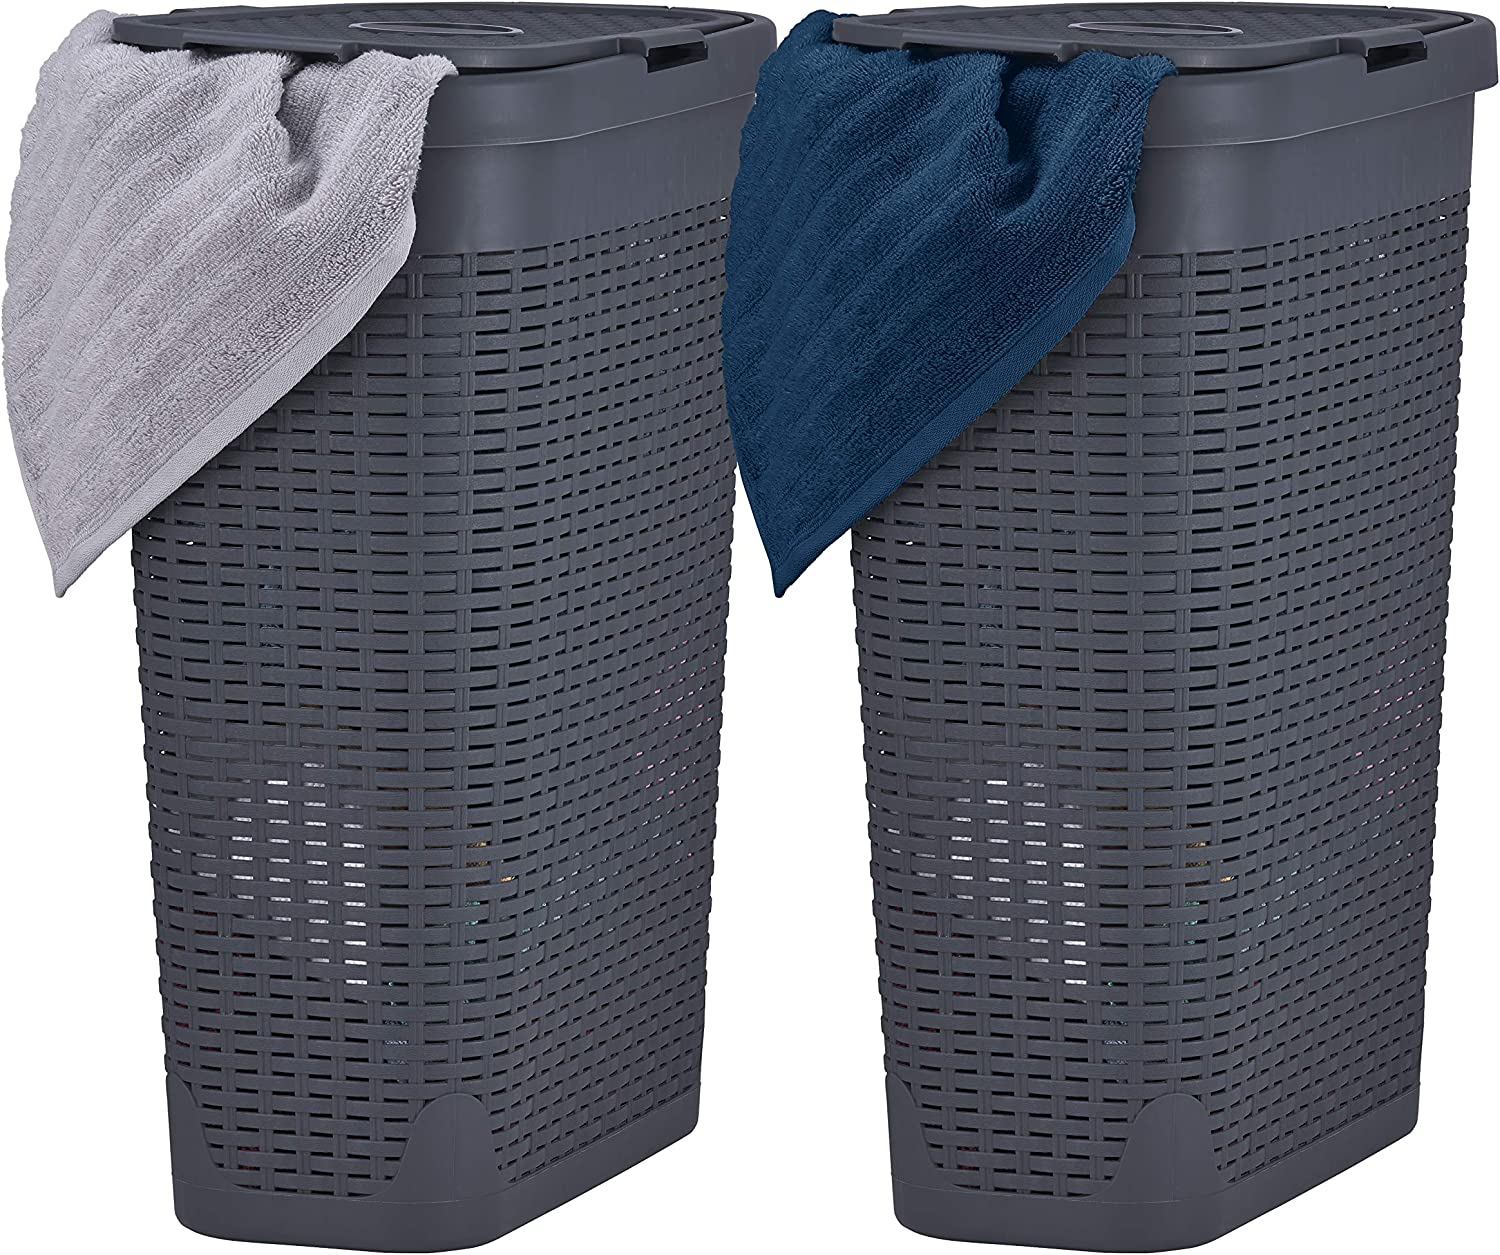 Superio Slim Laundry Hamper White 40 Liter (2 Pack) Durable Plastic Hamper Basket with Lid, Durable Washing Bin 1.15 Bushel, Narrow and Tall Basket Bathroom Storage Dirty Cloths Easy Use (Grey)